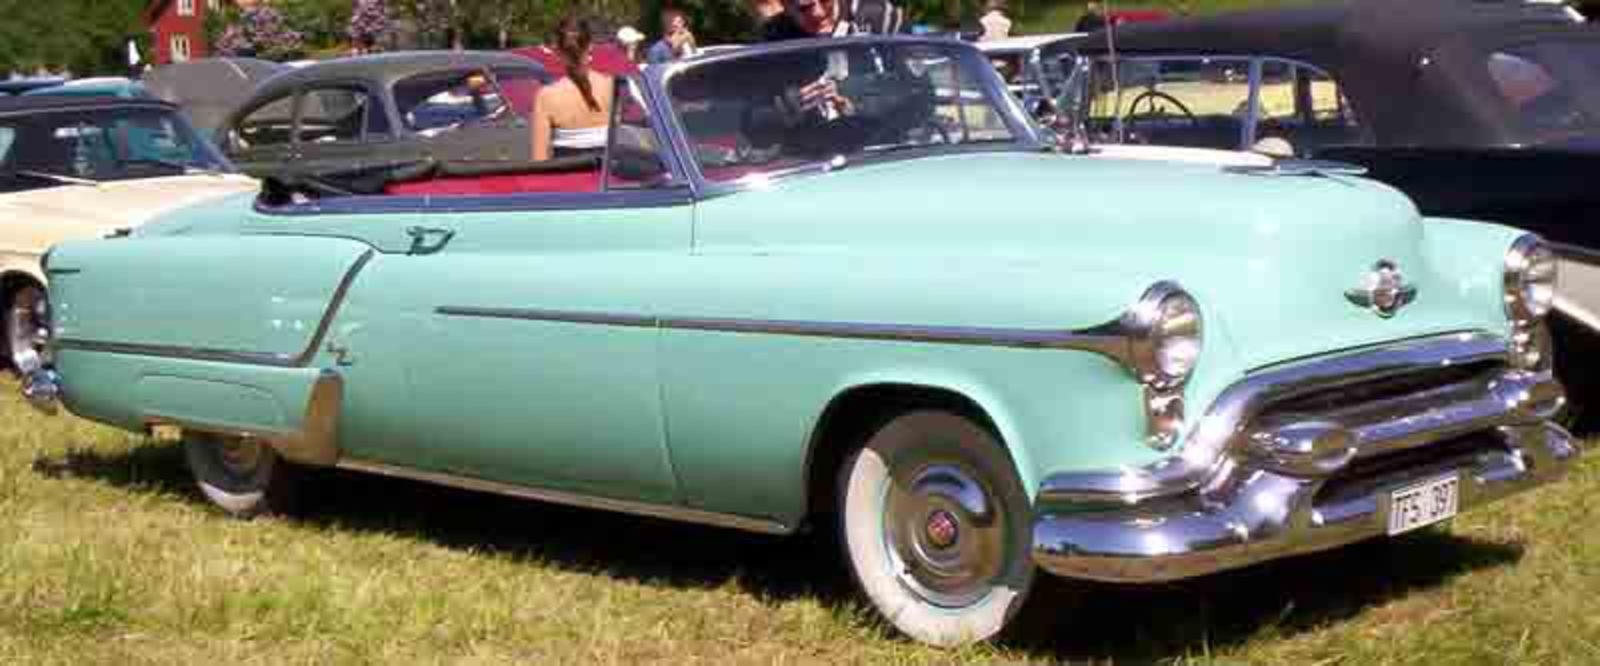 File:Oldsmobile 98 Convertible 1953.jpg. No higher resolution available.